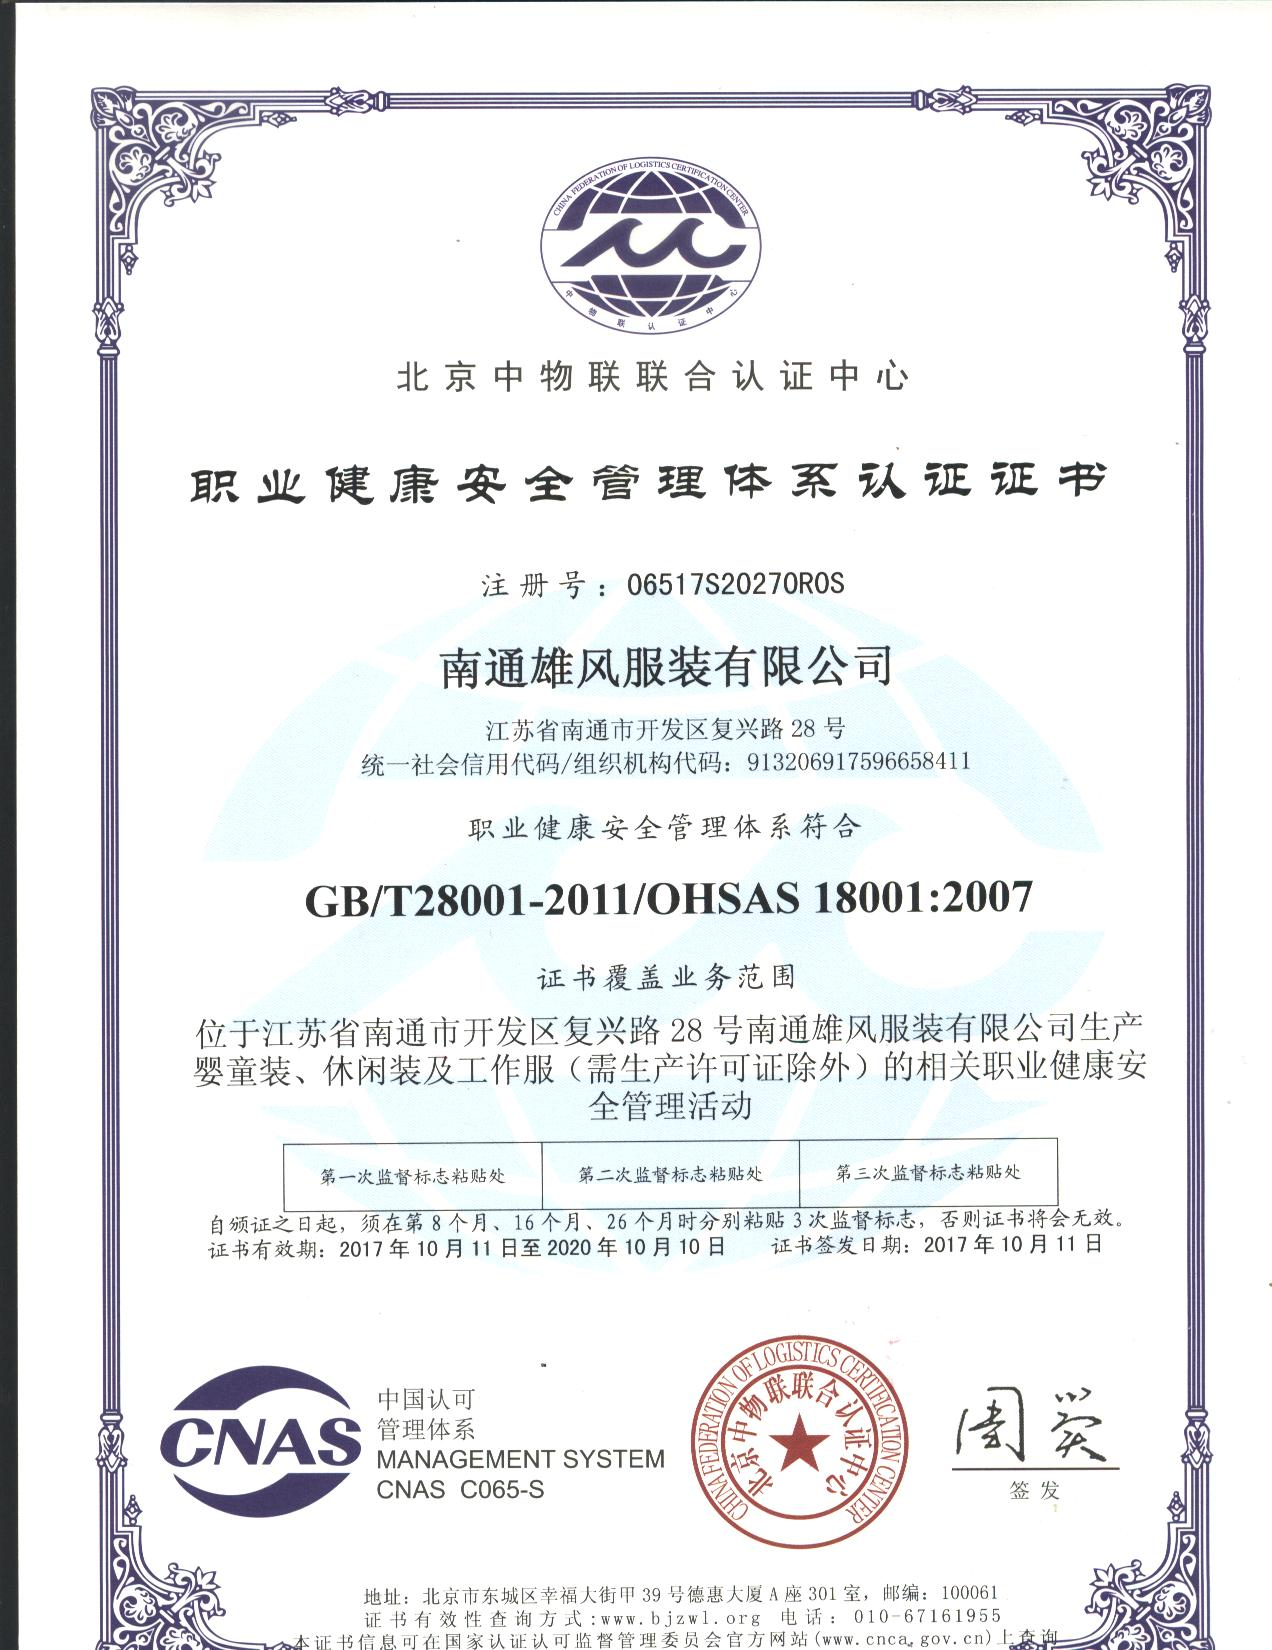 Certification of occupational health and safety management system.